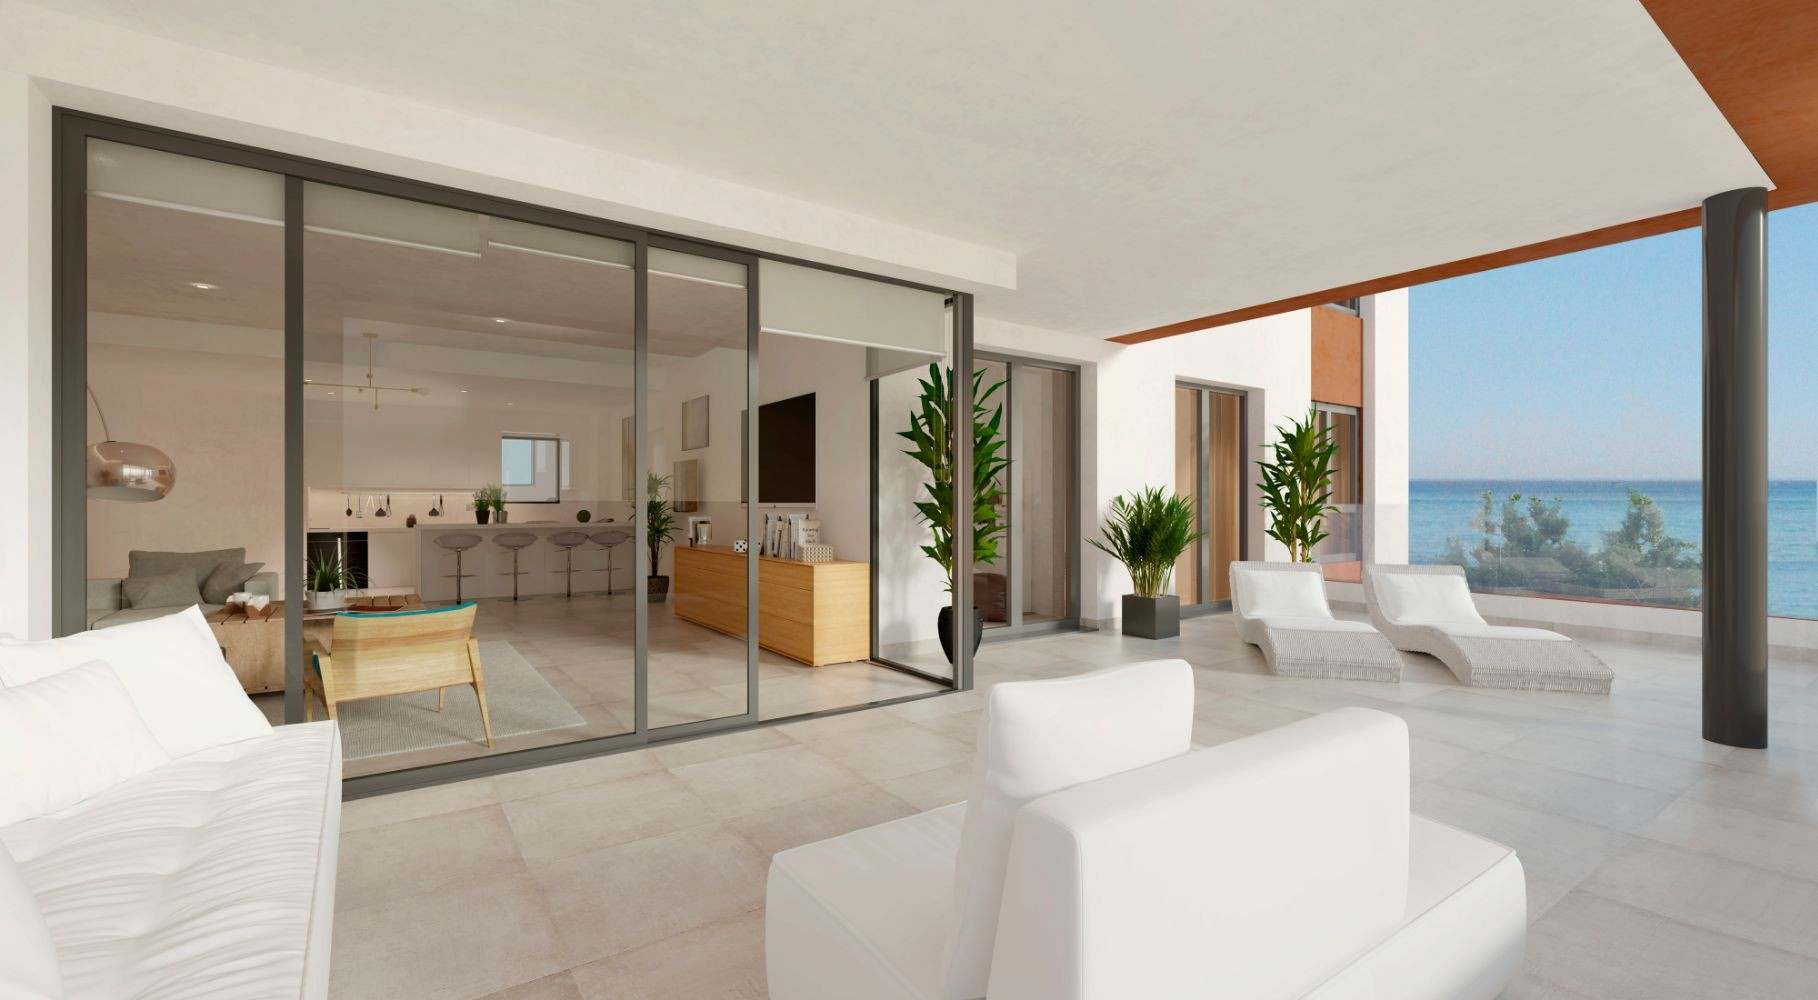 Brand new and modern apartments in Fuengirola